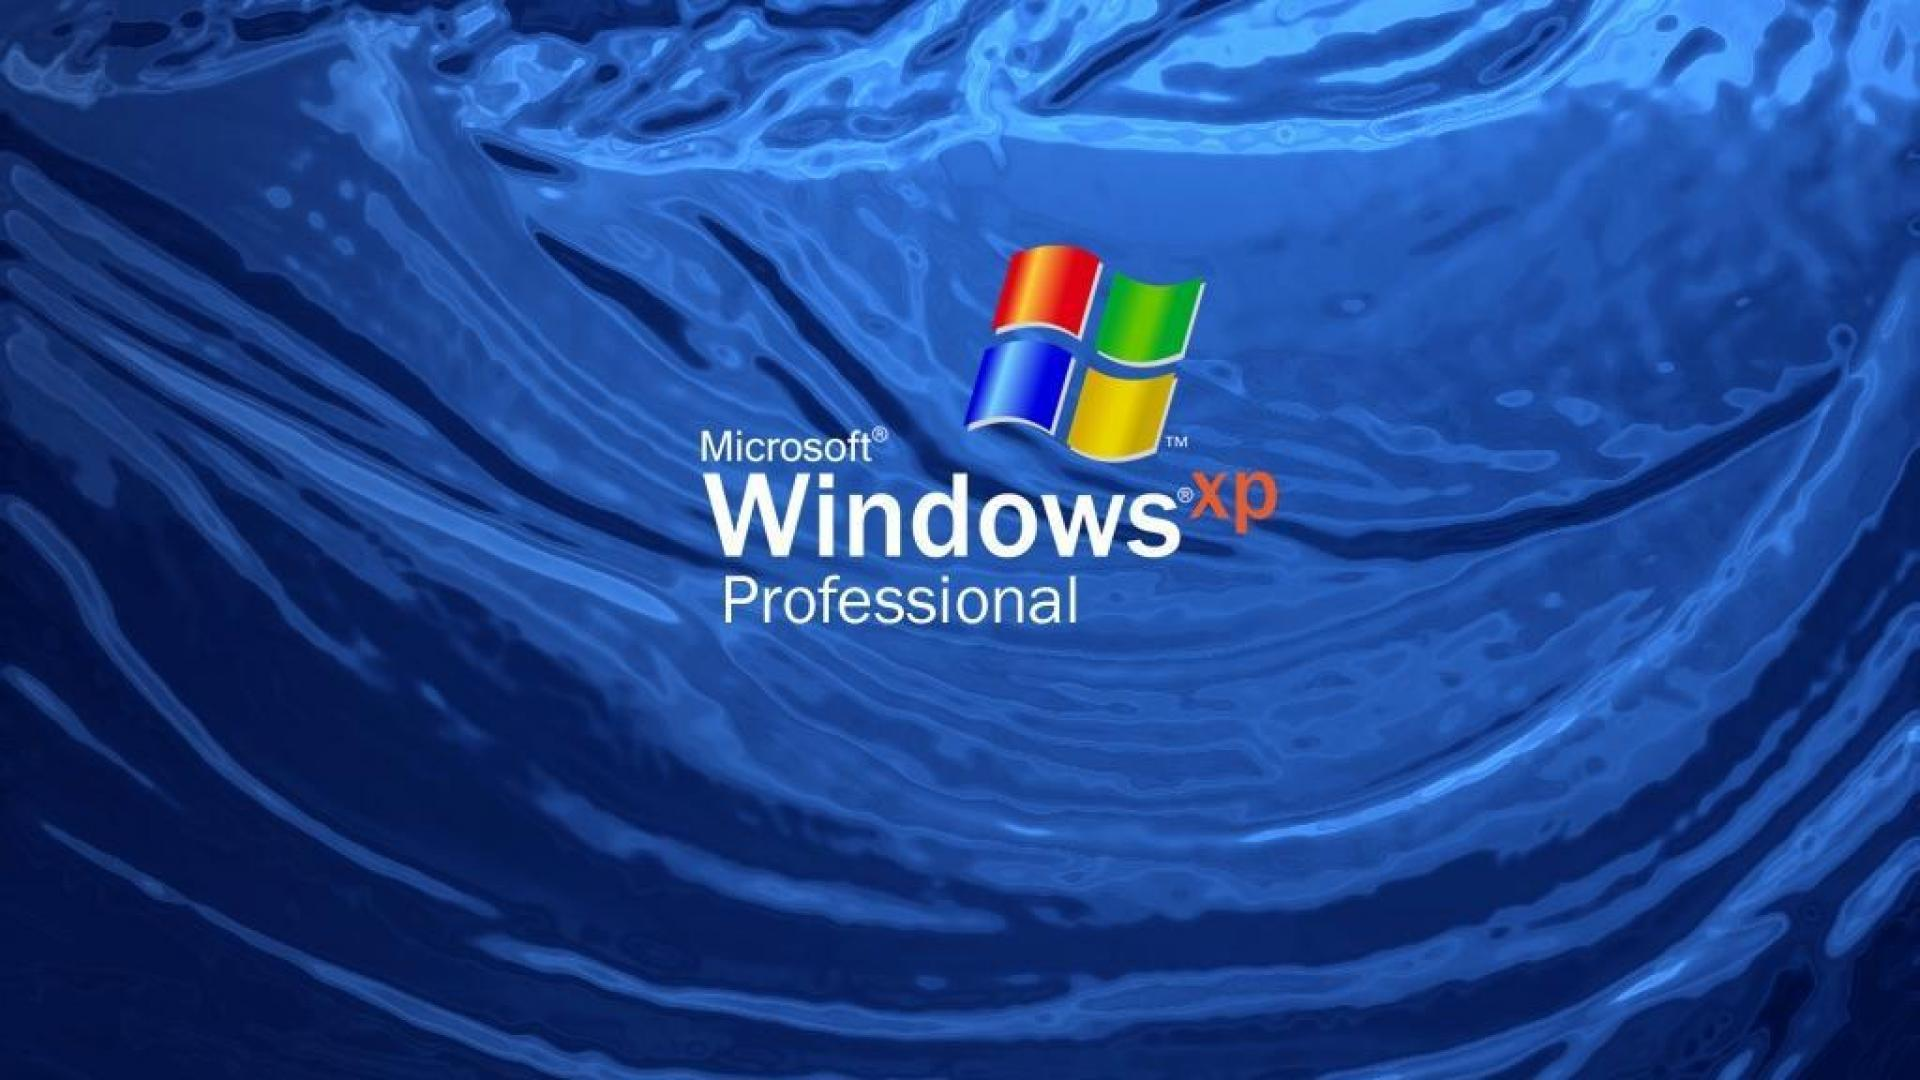 50 cool windows xp wallpapers in hd for free download.